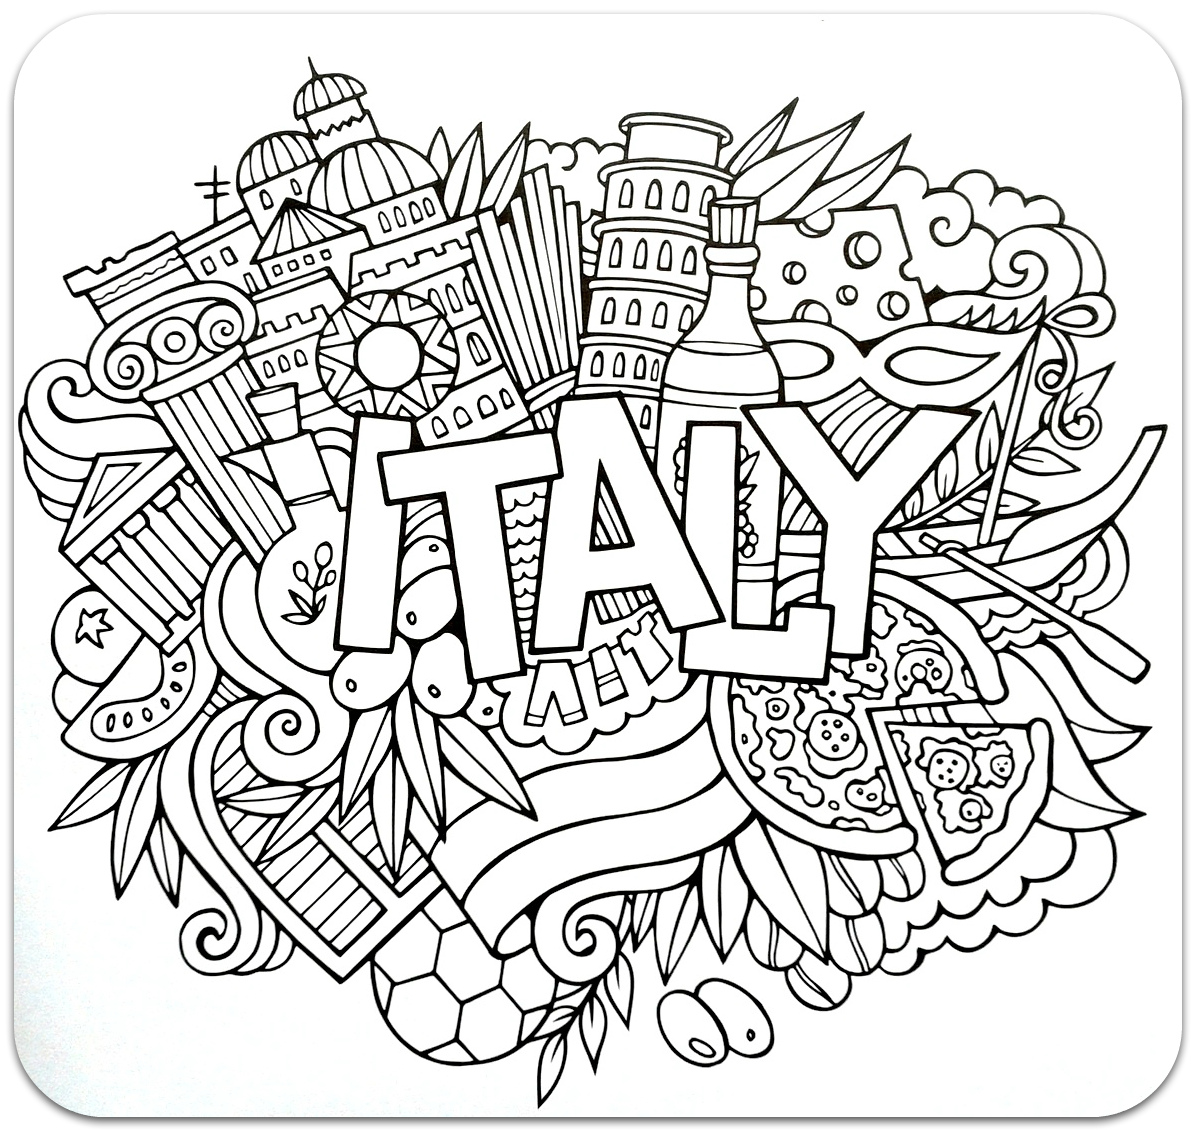 Coloring for adults, Coloring Antistress, країни, travel, raskraski antistress, страны, Italycountries